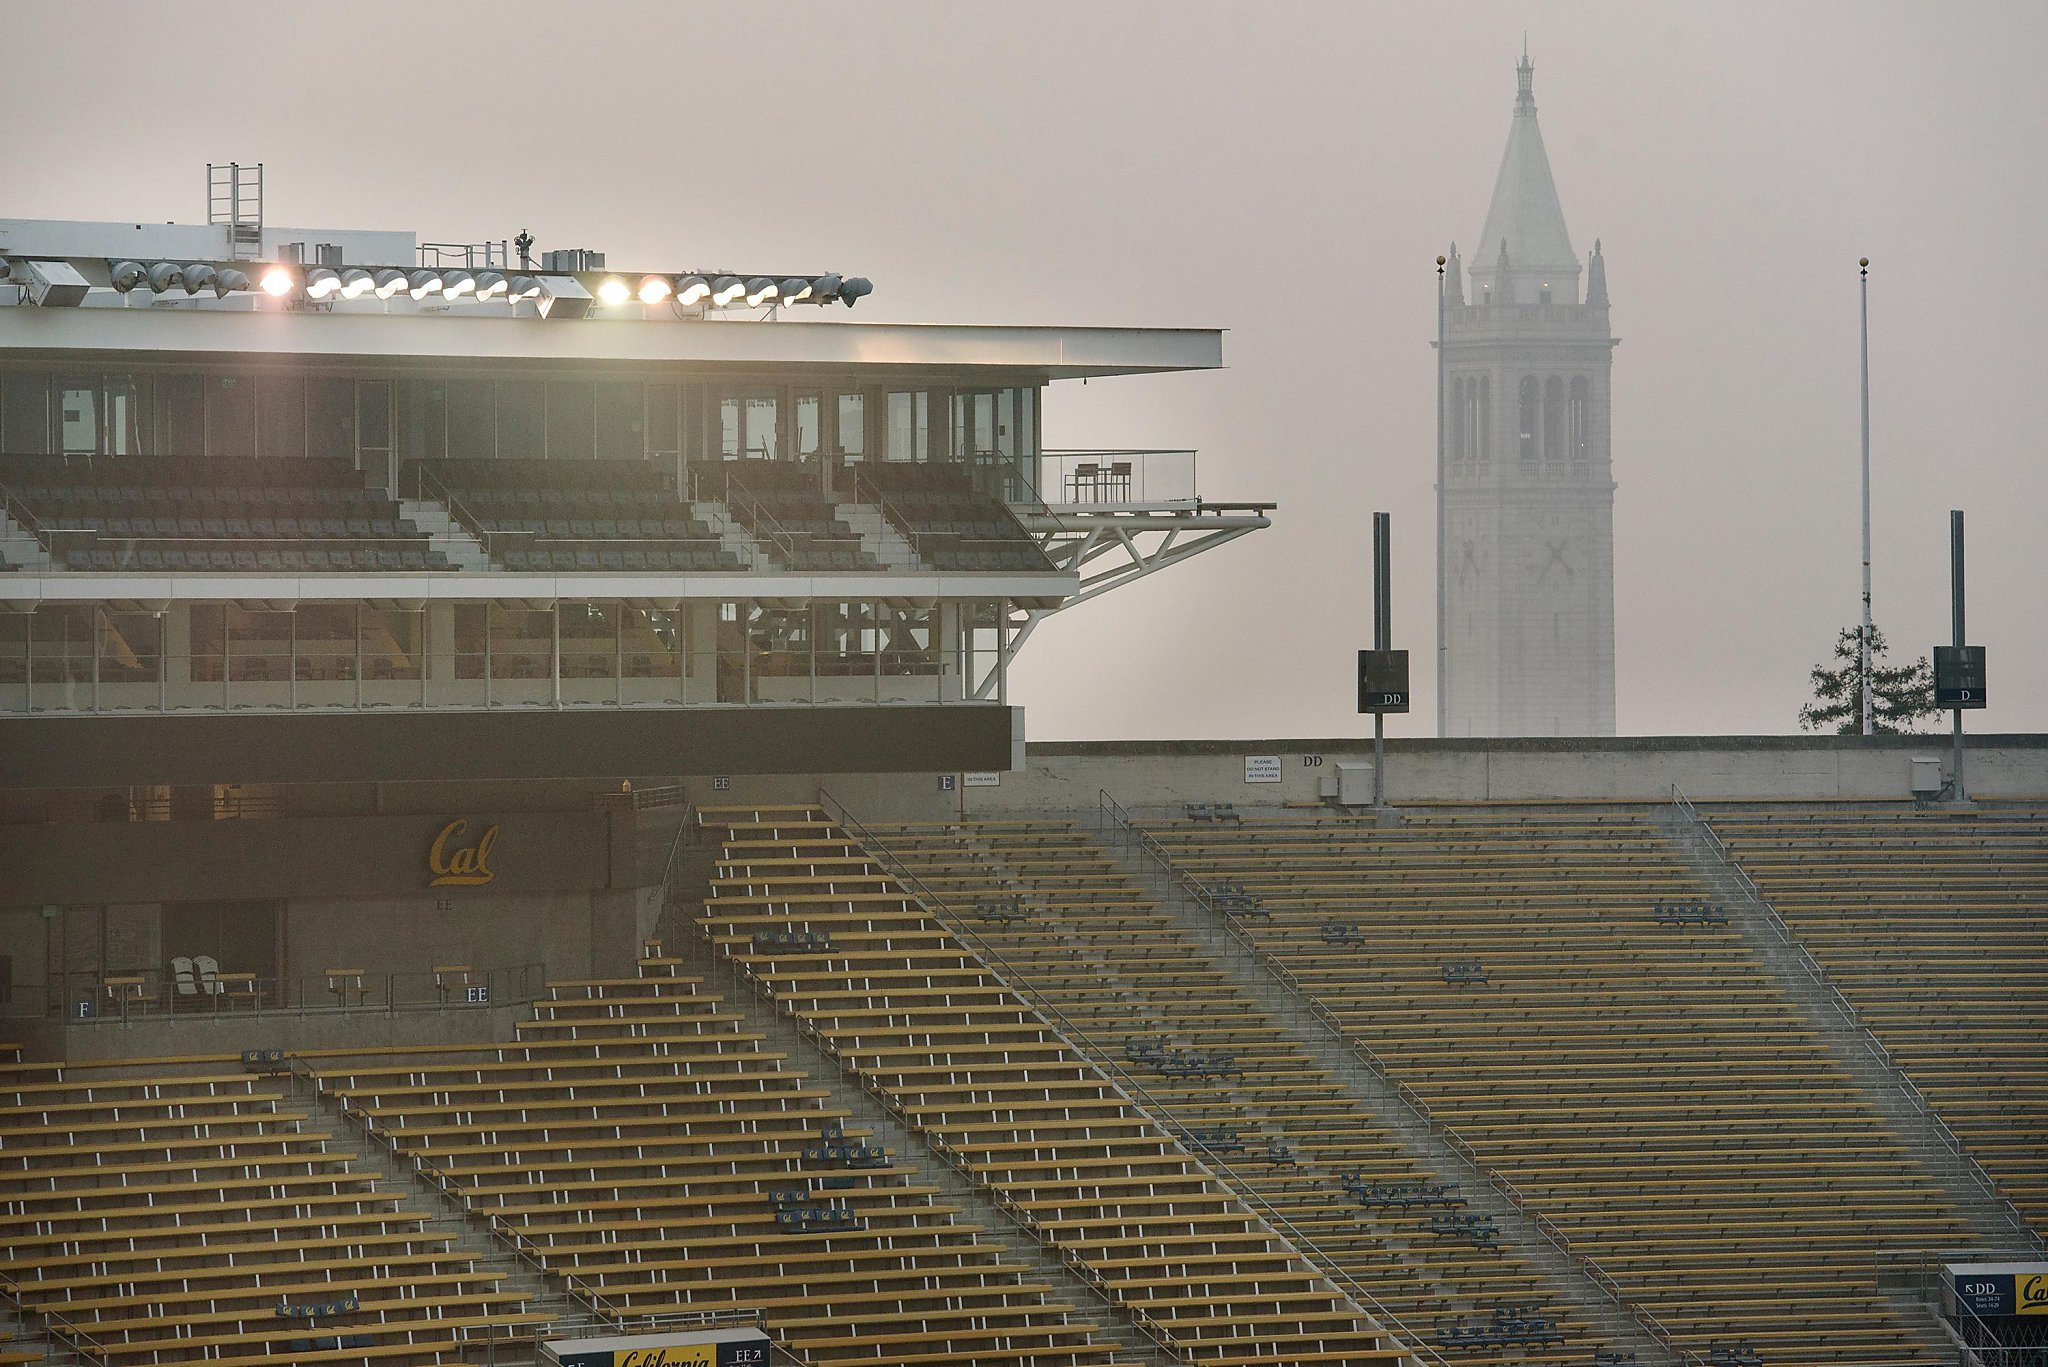 Woman accuses Cal football players, coaches of sexual